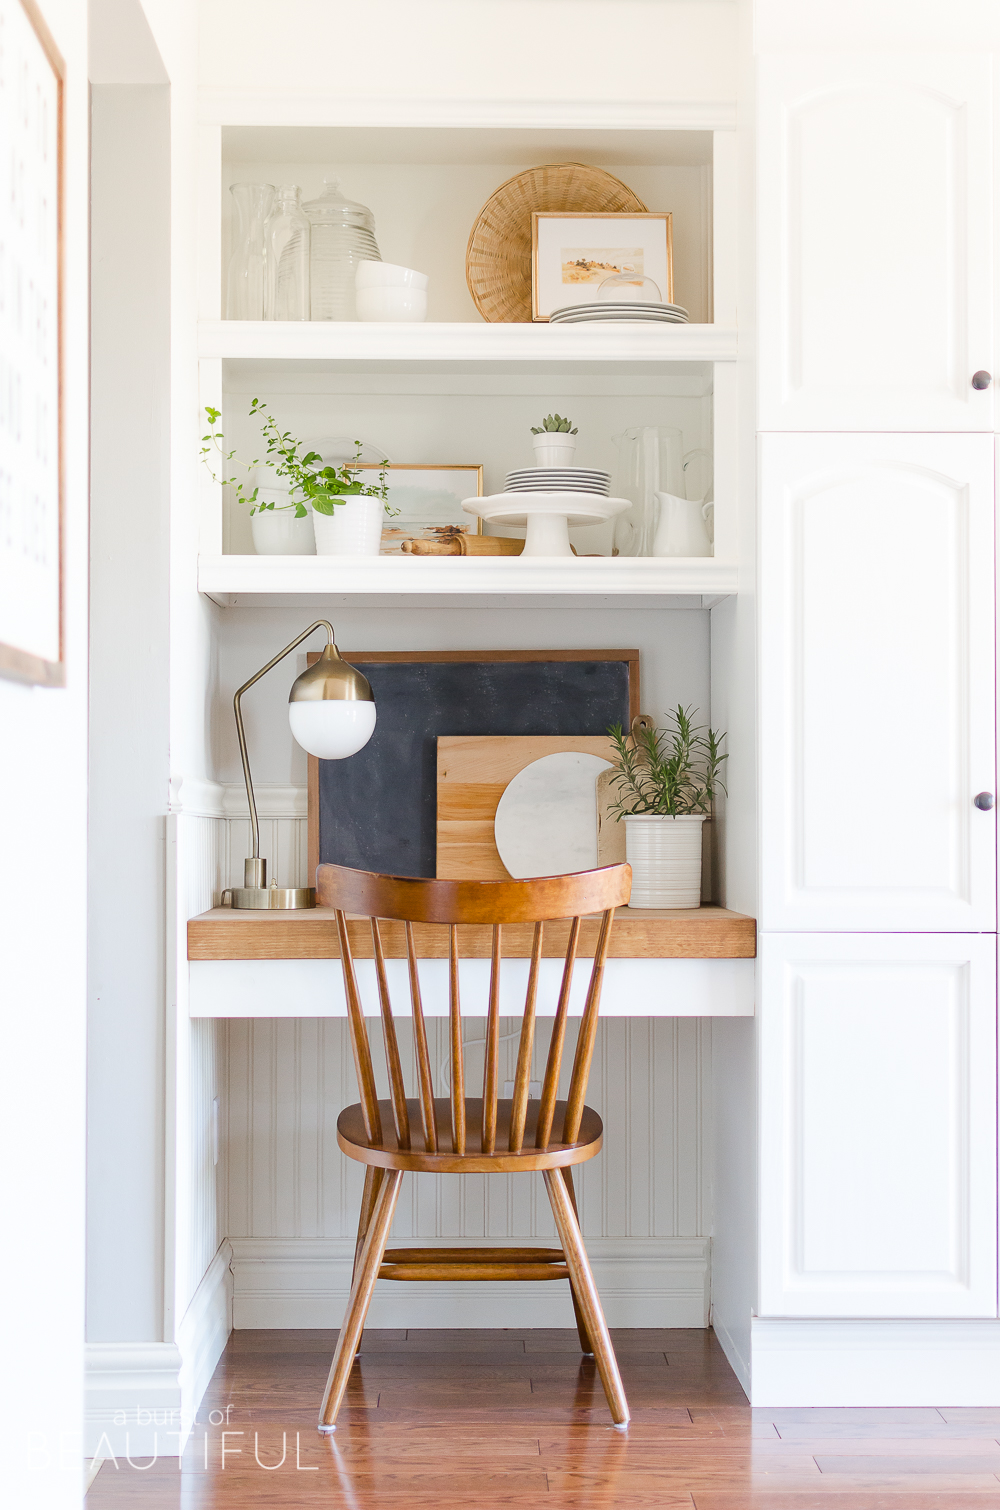 Storage Solutions to Maximize Space